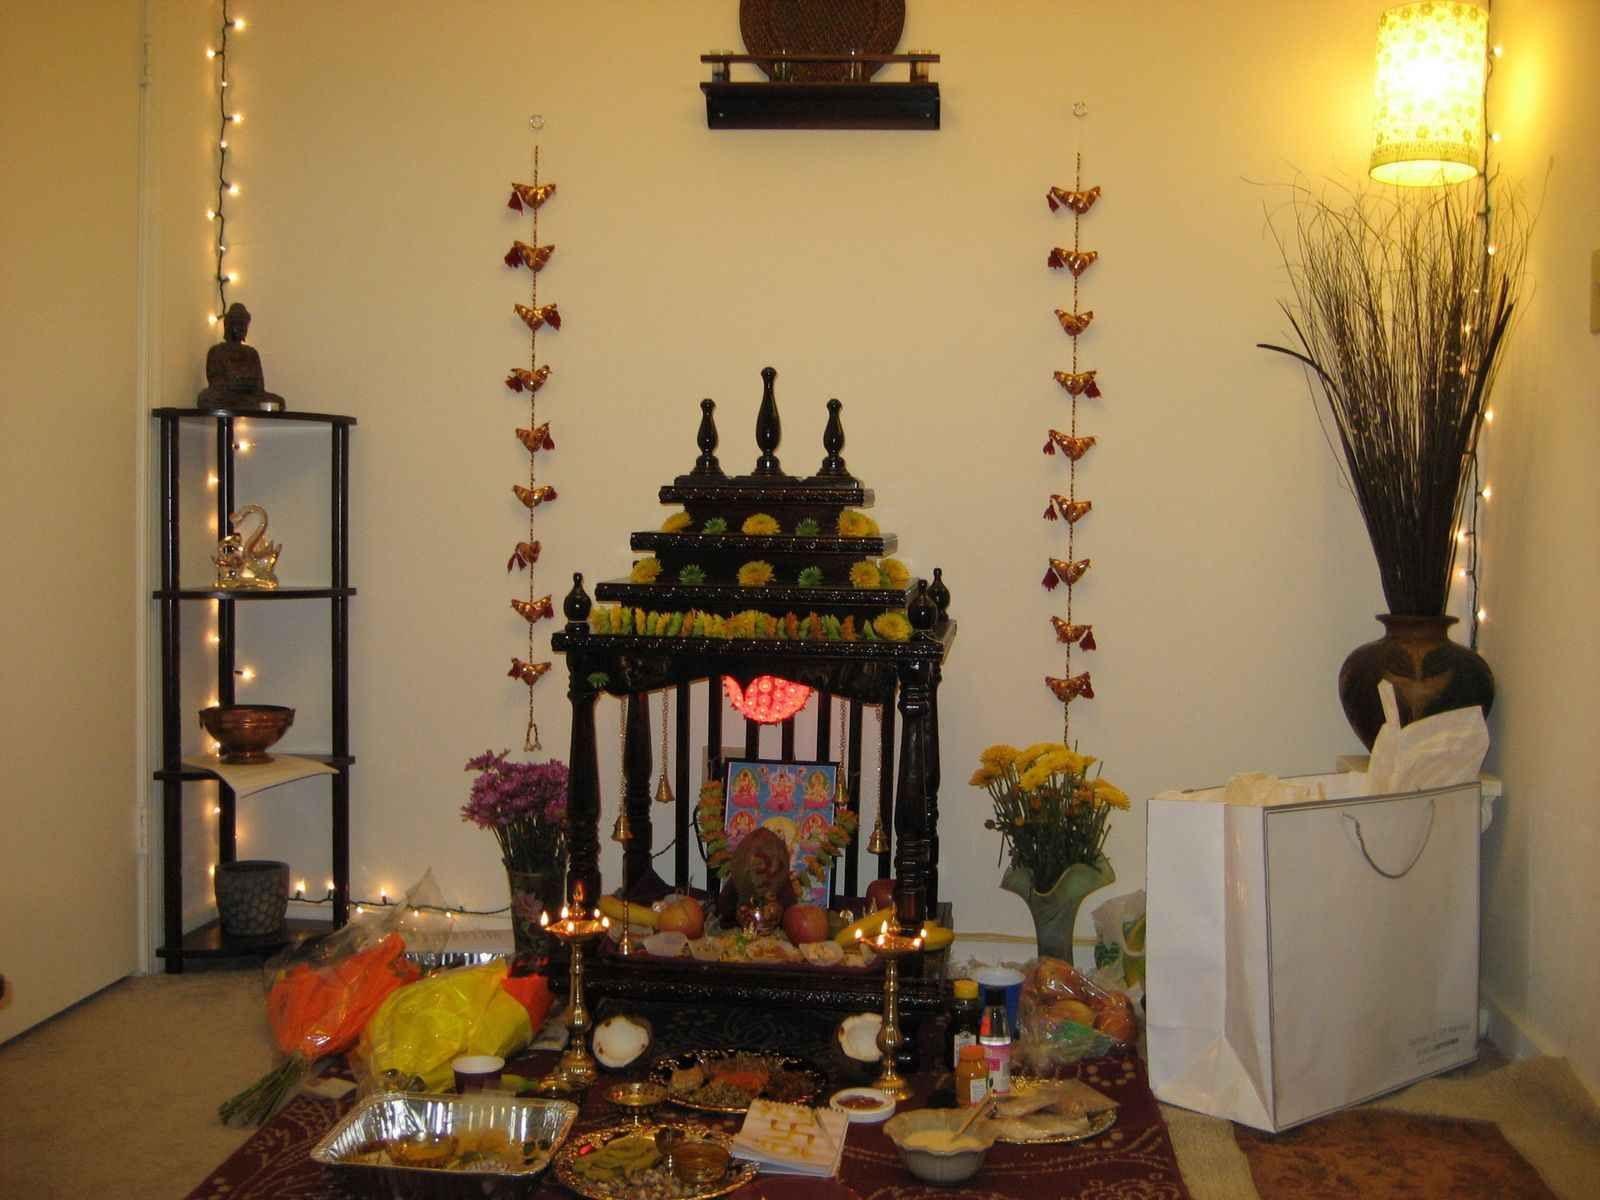 Puja room design home mandir lamps doors vastu idols for How to make diwali decorations at home